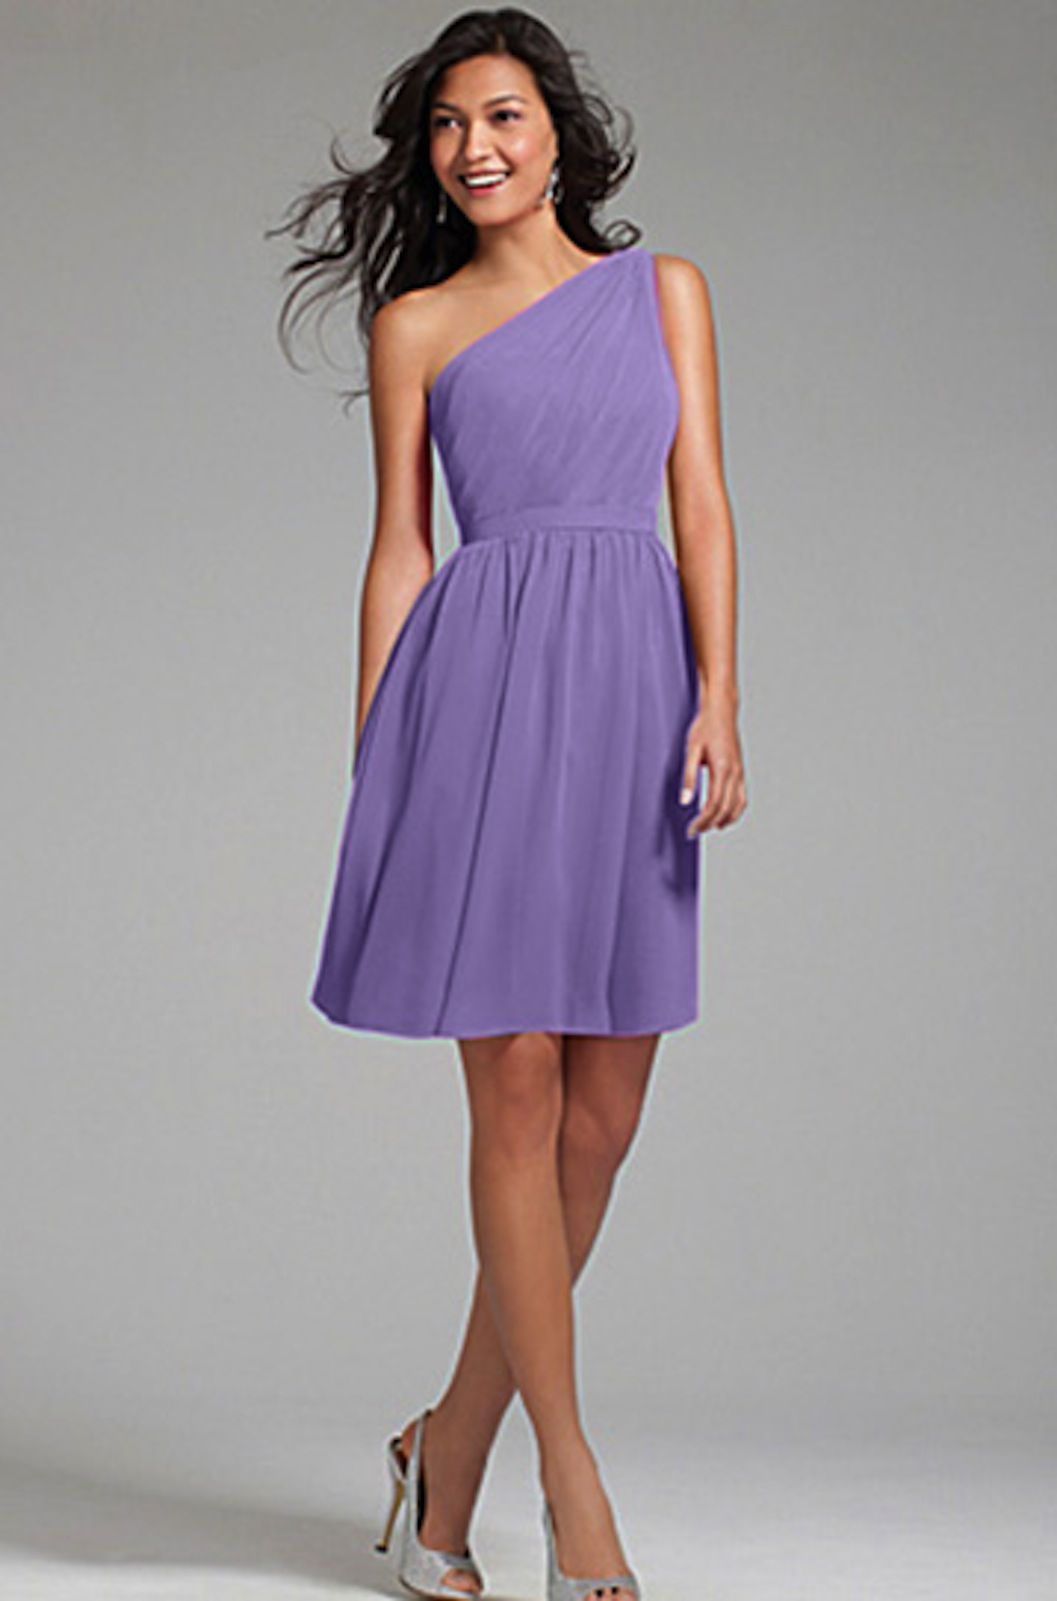 Alfred angelo 7243 s bridesmaid dress weddington way canjs alfred angelo 7243 s bridesmaid dress weddington way ombrellifo Image collections